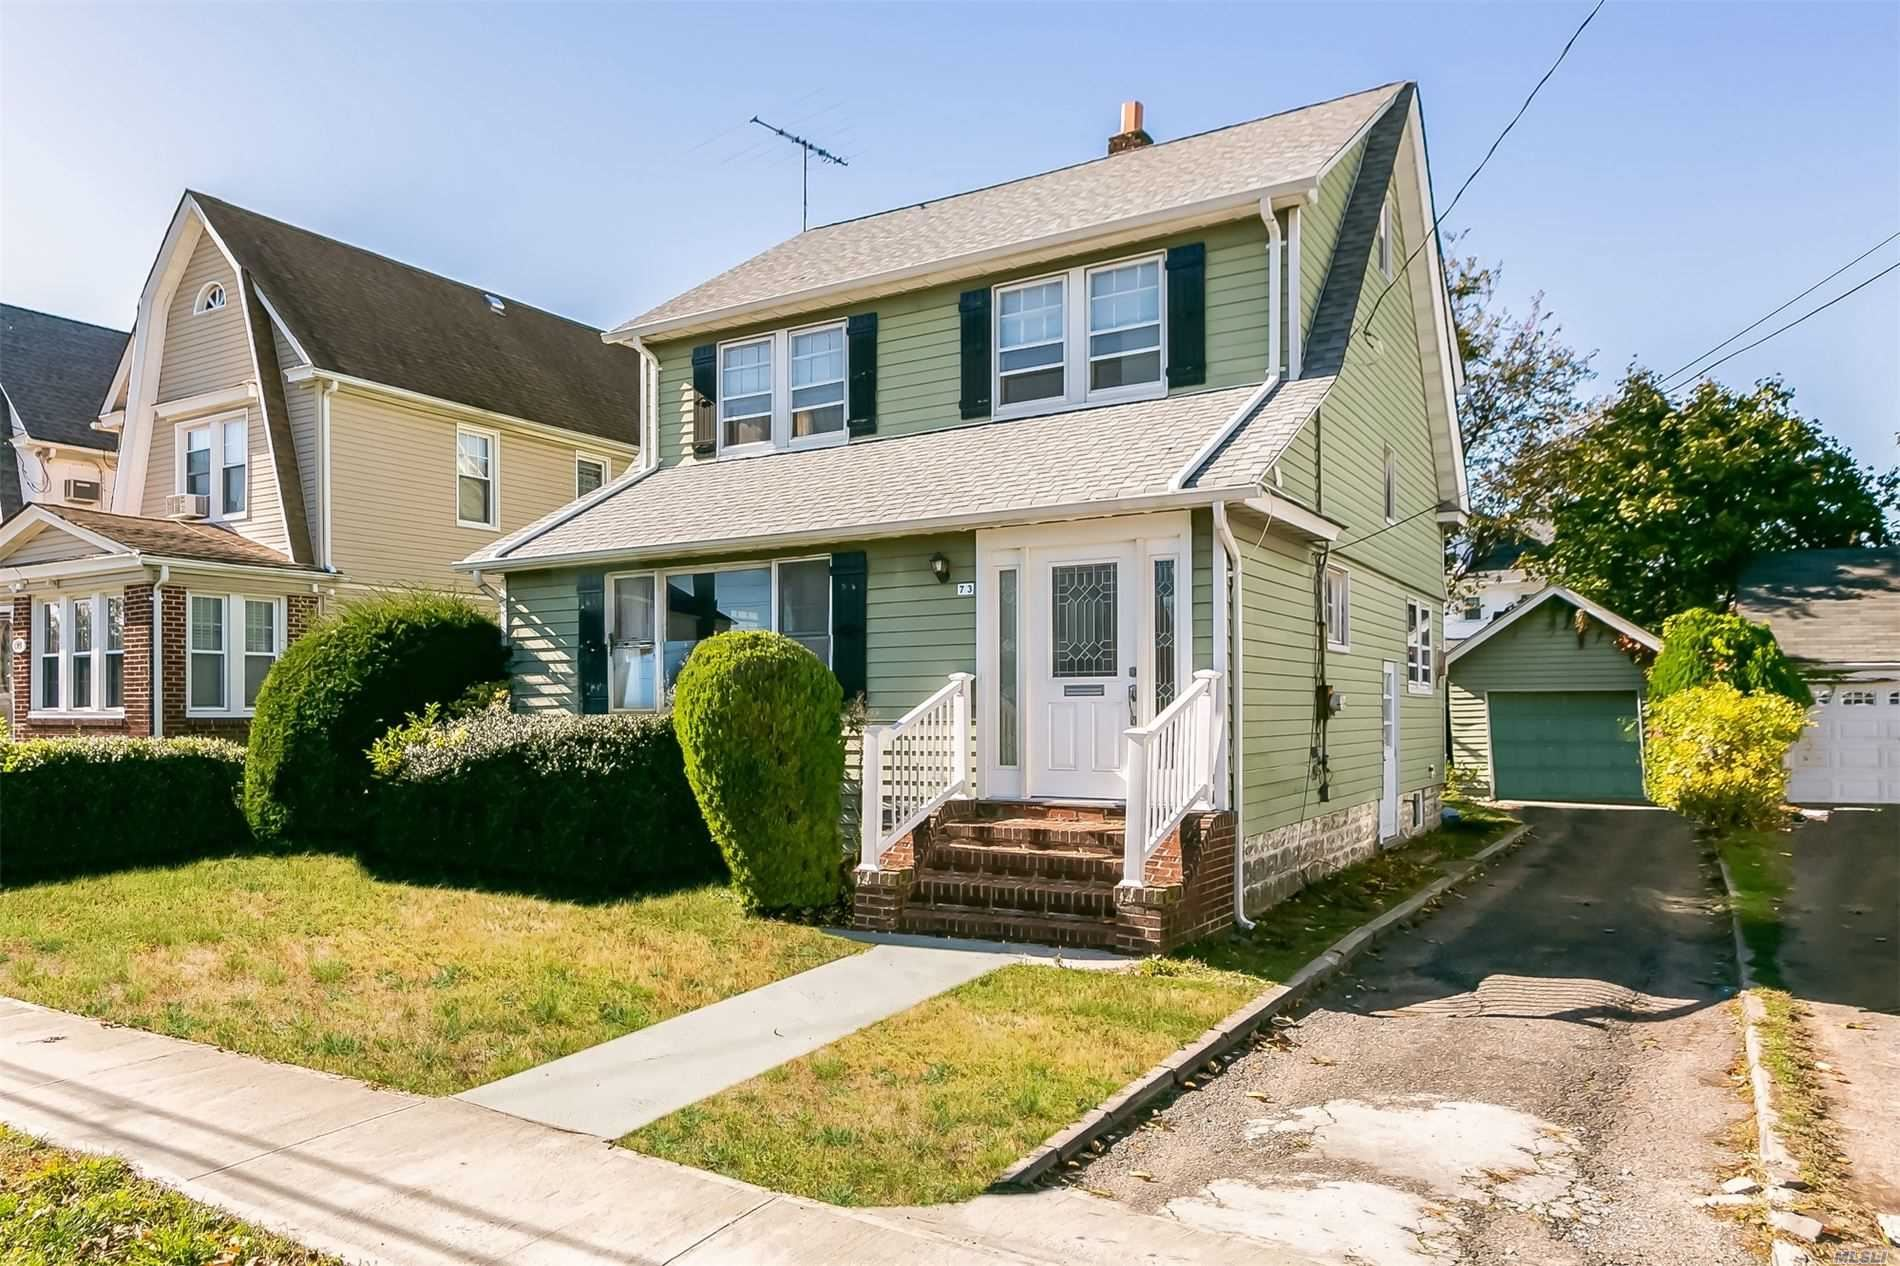 73 Bismark Avenue, Valley Stream, NY 11581 - MLS#: 3177629